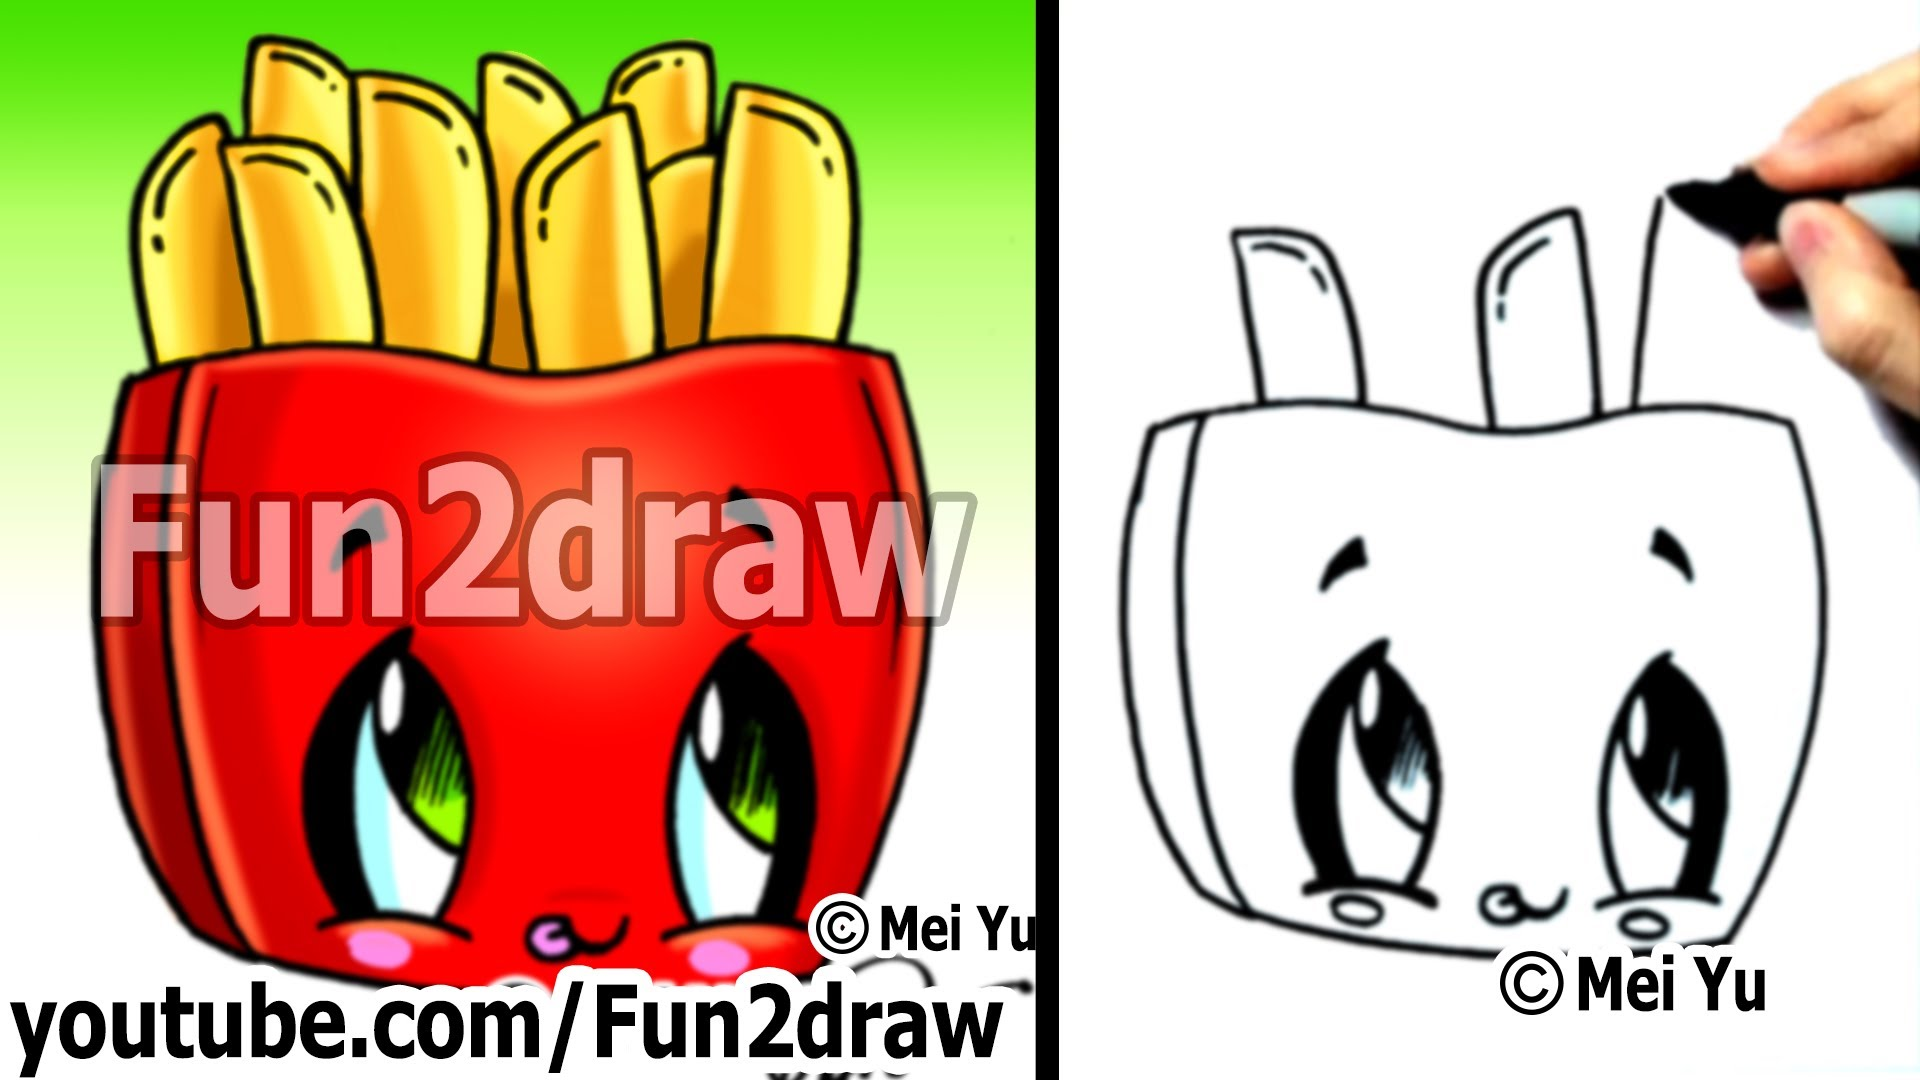 Drawn tacos fun2draw To Kawaii Kawaii Drawing) YouTube